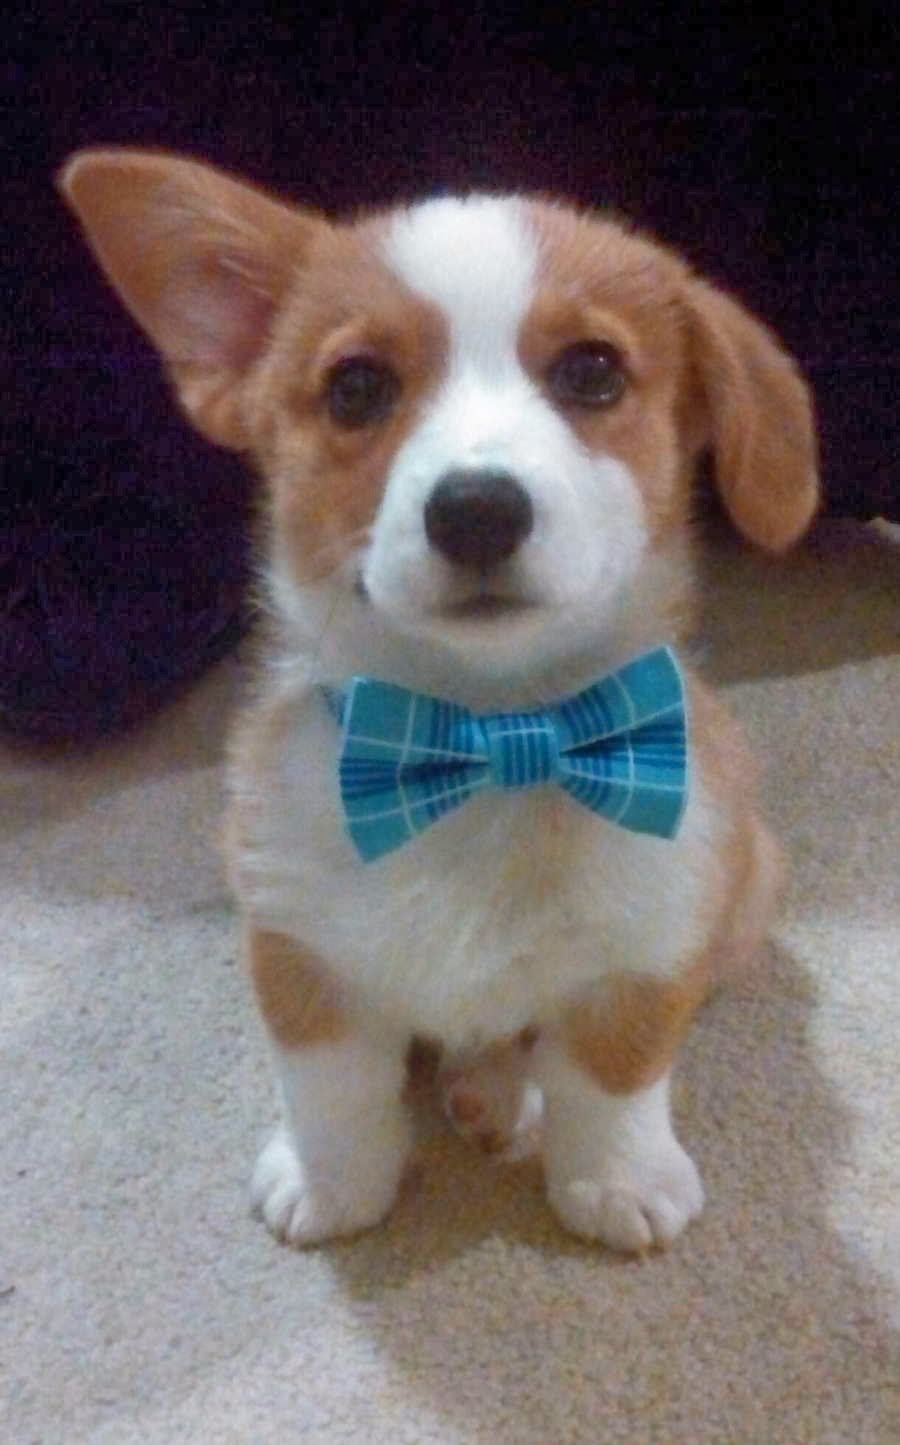 Cute dogs (50 pics), dog pictures, corgi puppy have floppy ear and wears bow tie